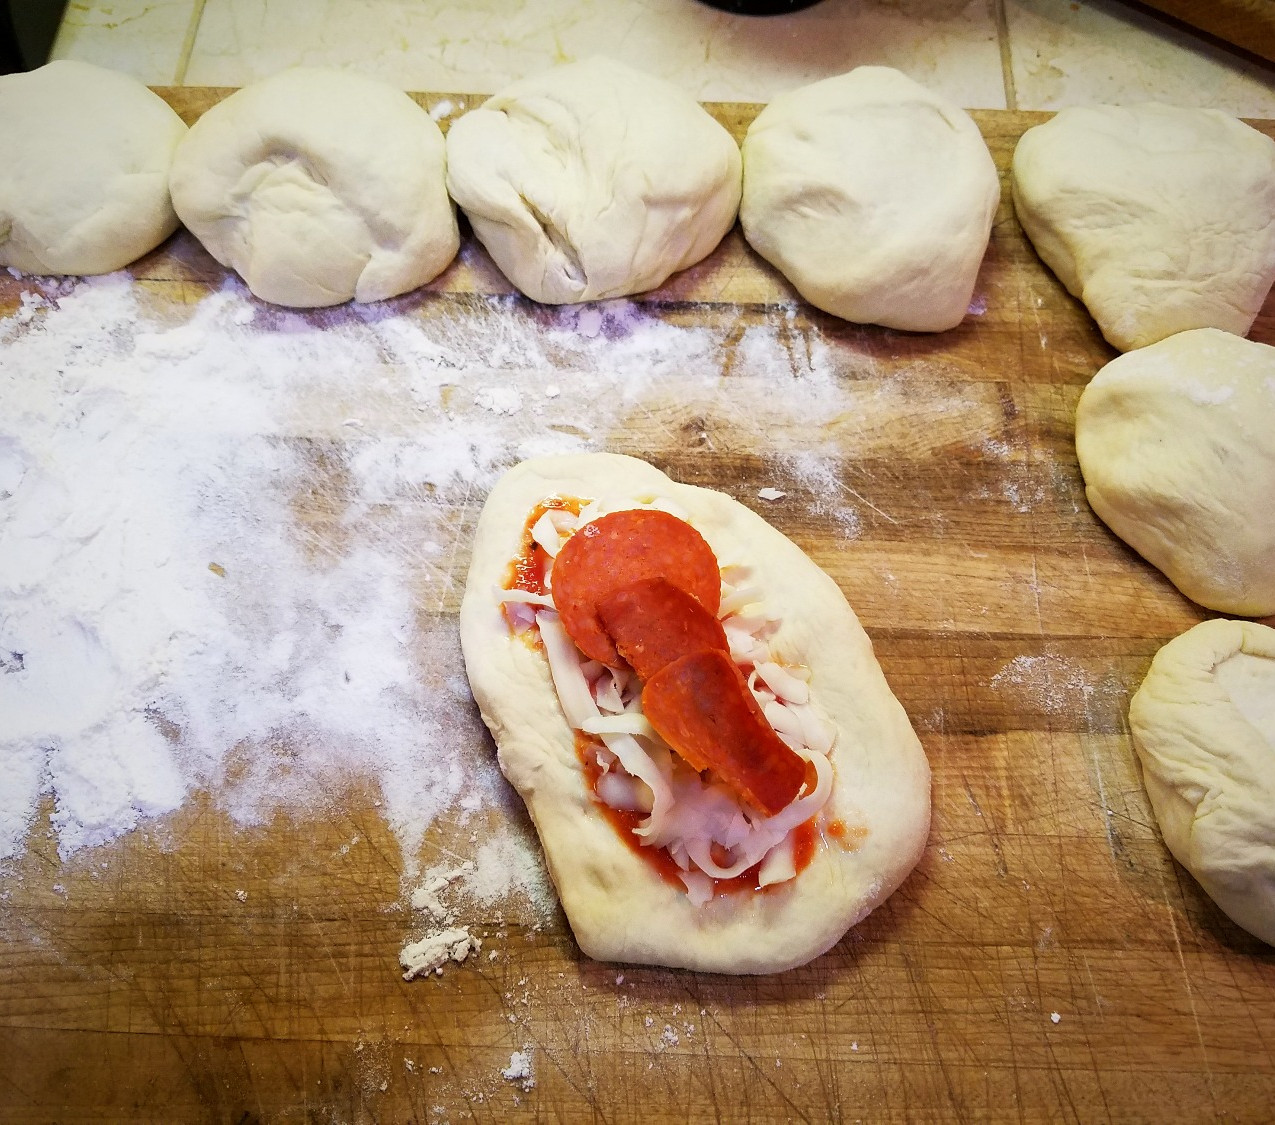 After mixing the dough